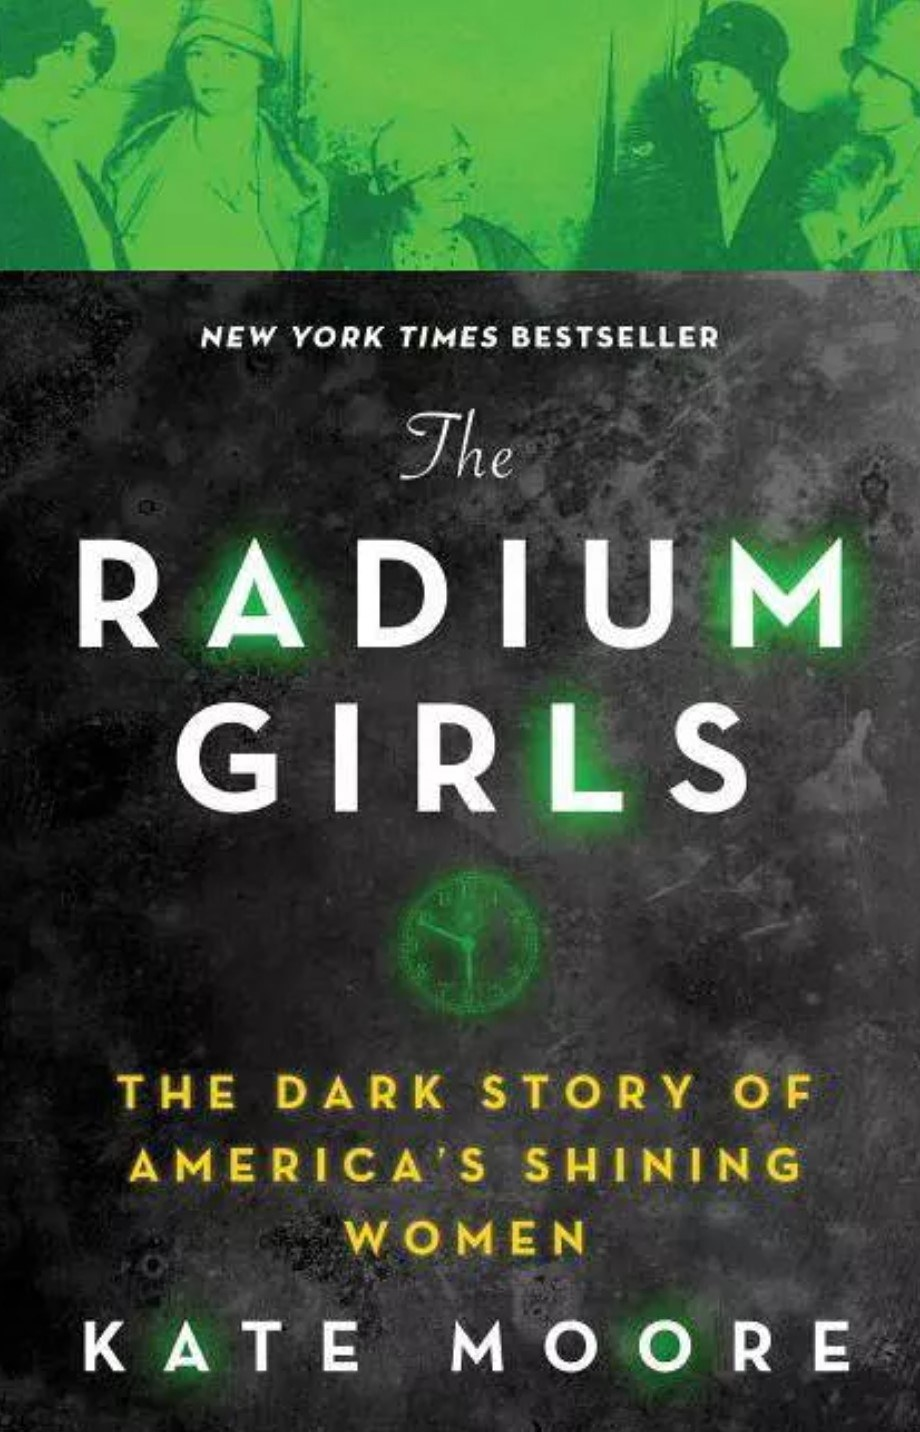 The cover of The Radium Girls by Kate Moore